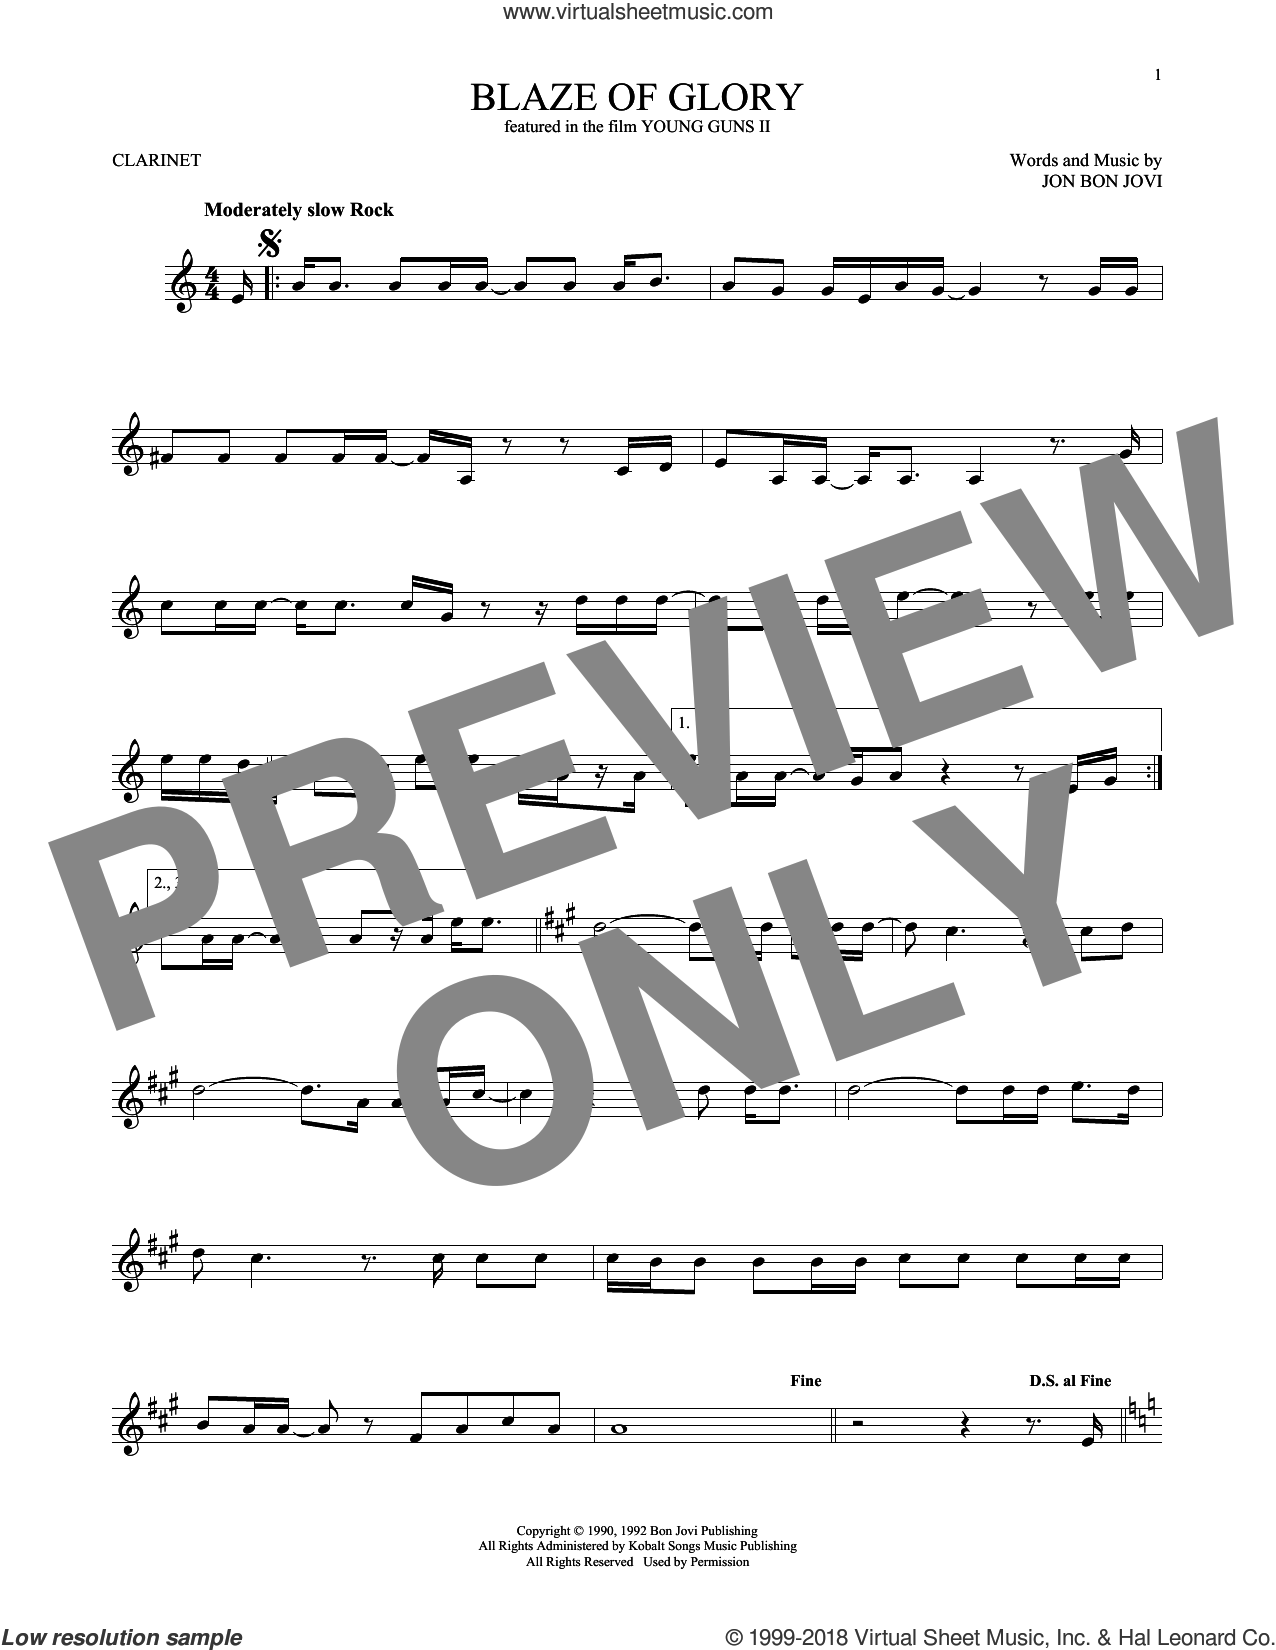 Blaze Of Glory sheet music for clarinet solo by Bon Jovi, intermediate skill level